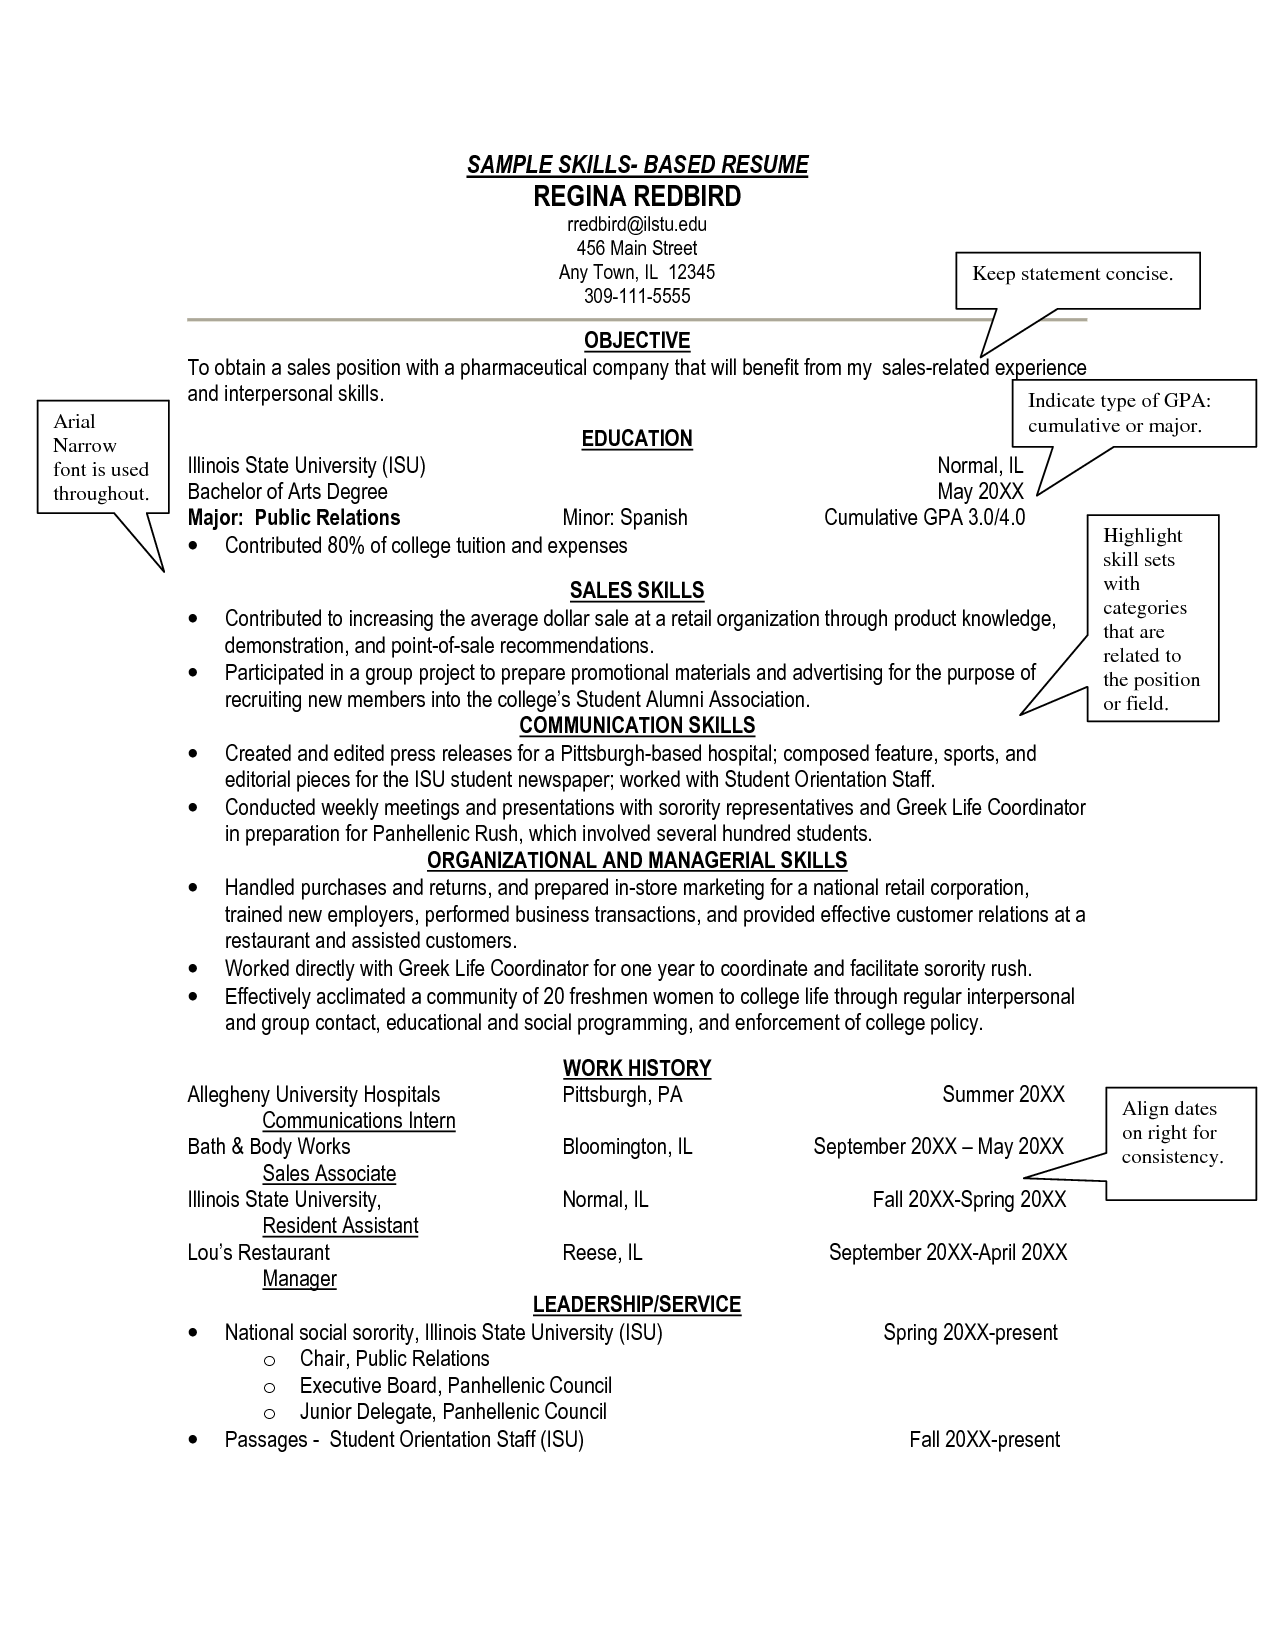 Sample Skills Resume Template | Interview | Pinterest